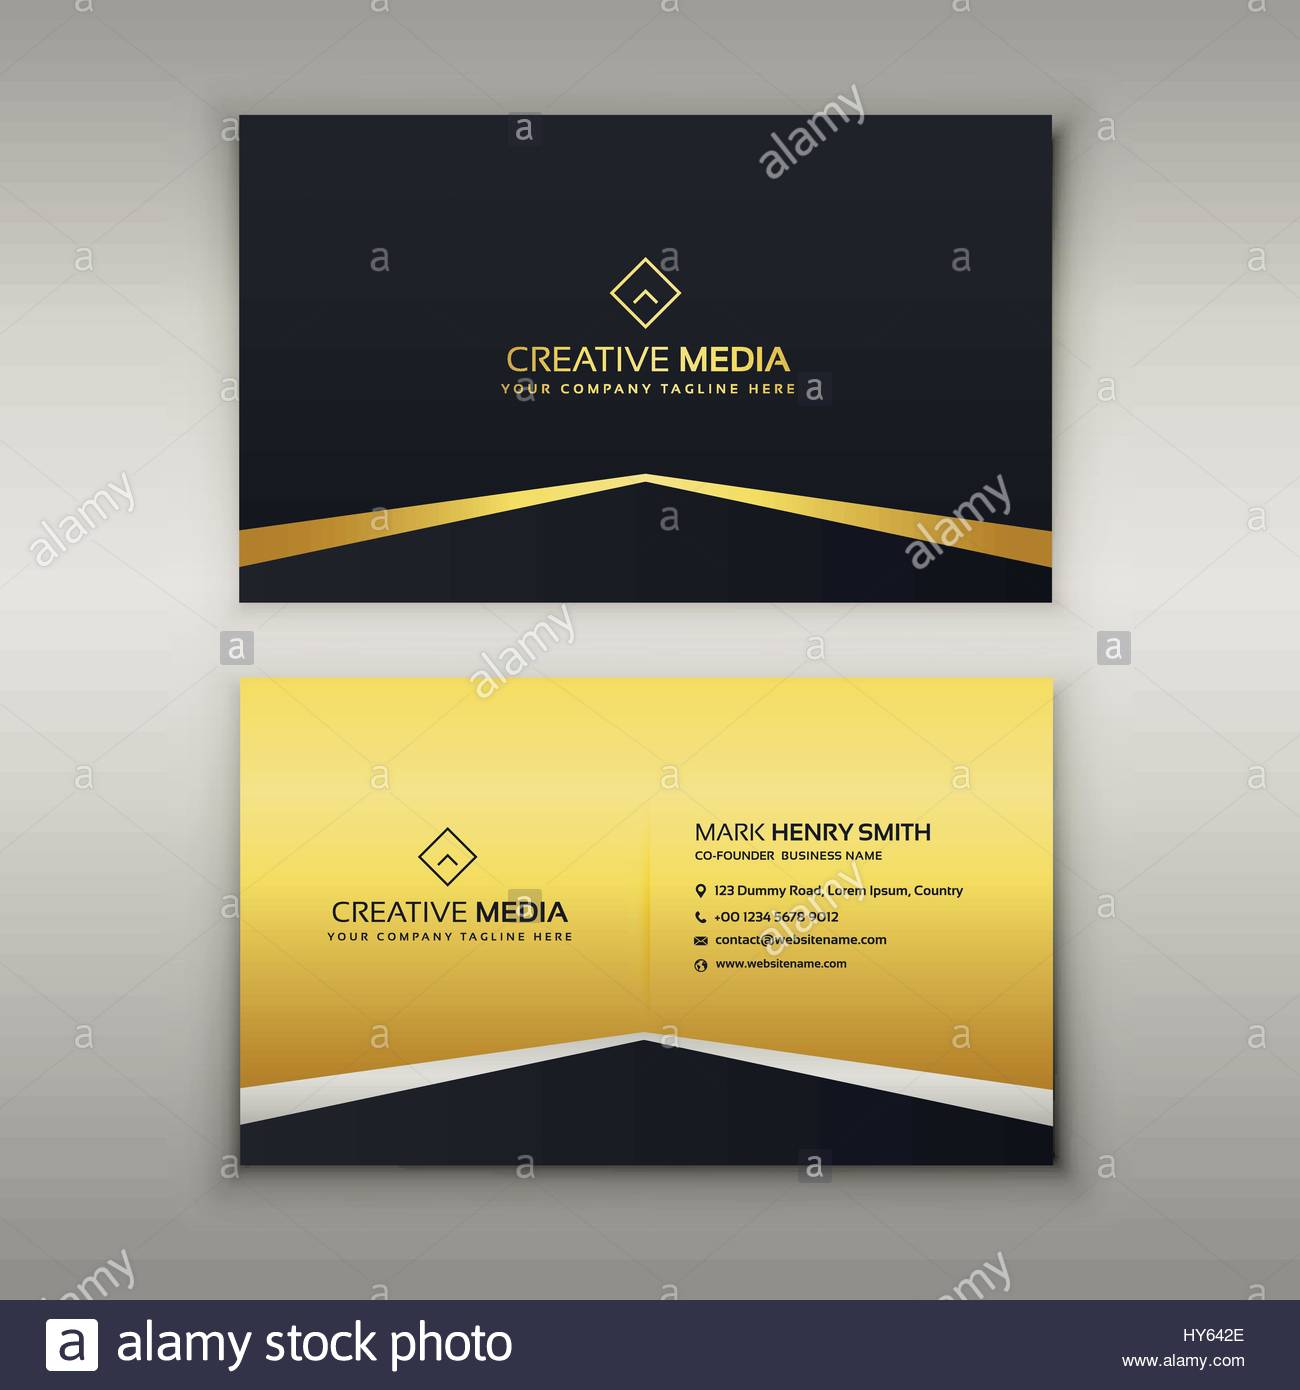 Luxury Business Card Design Template Stock Vector Art - Business card design templates